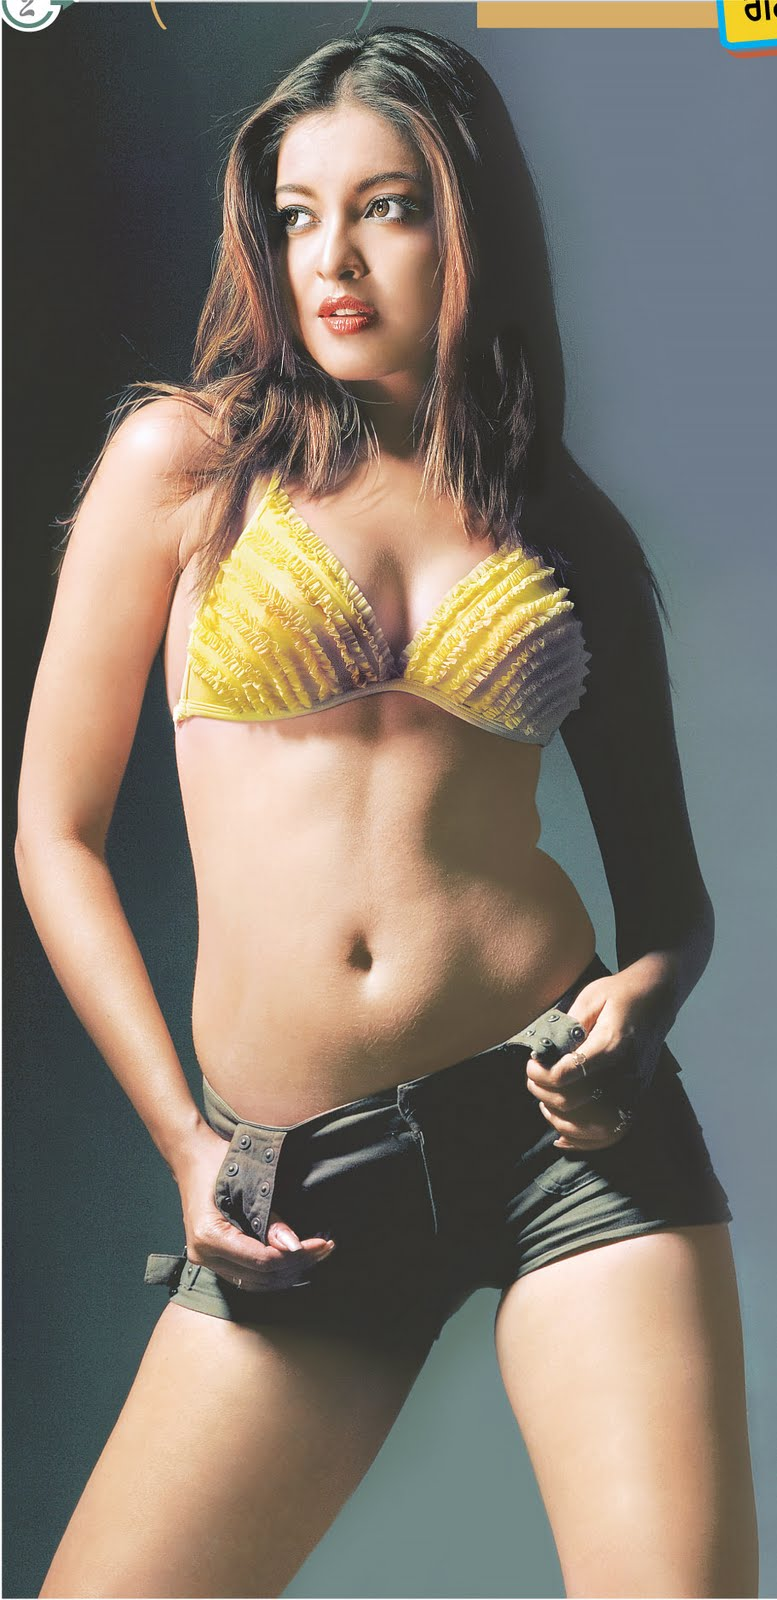 image Bipasha basu bollywood actress